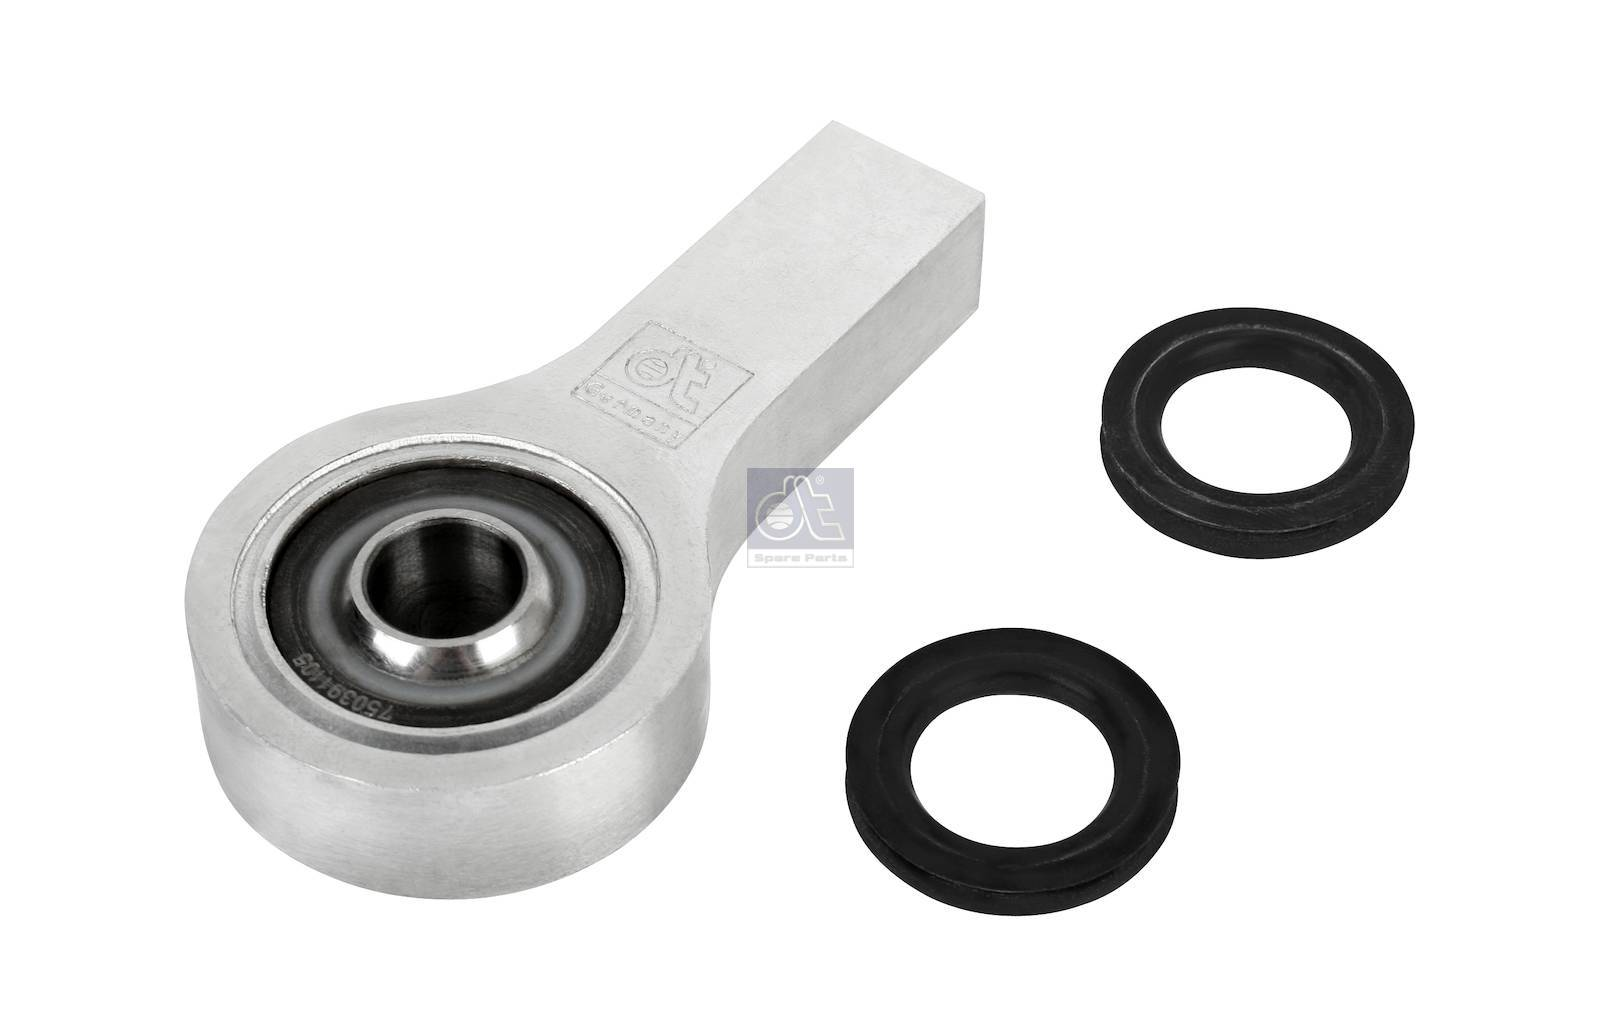 Bearing joint, complete with seal rings